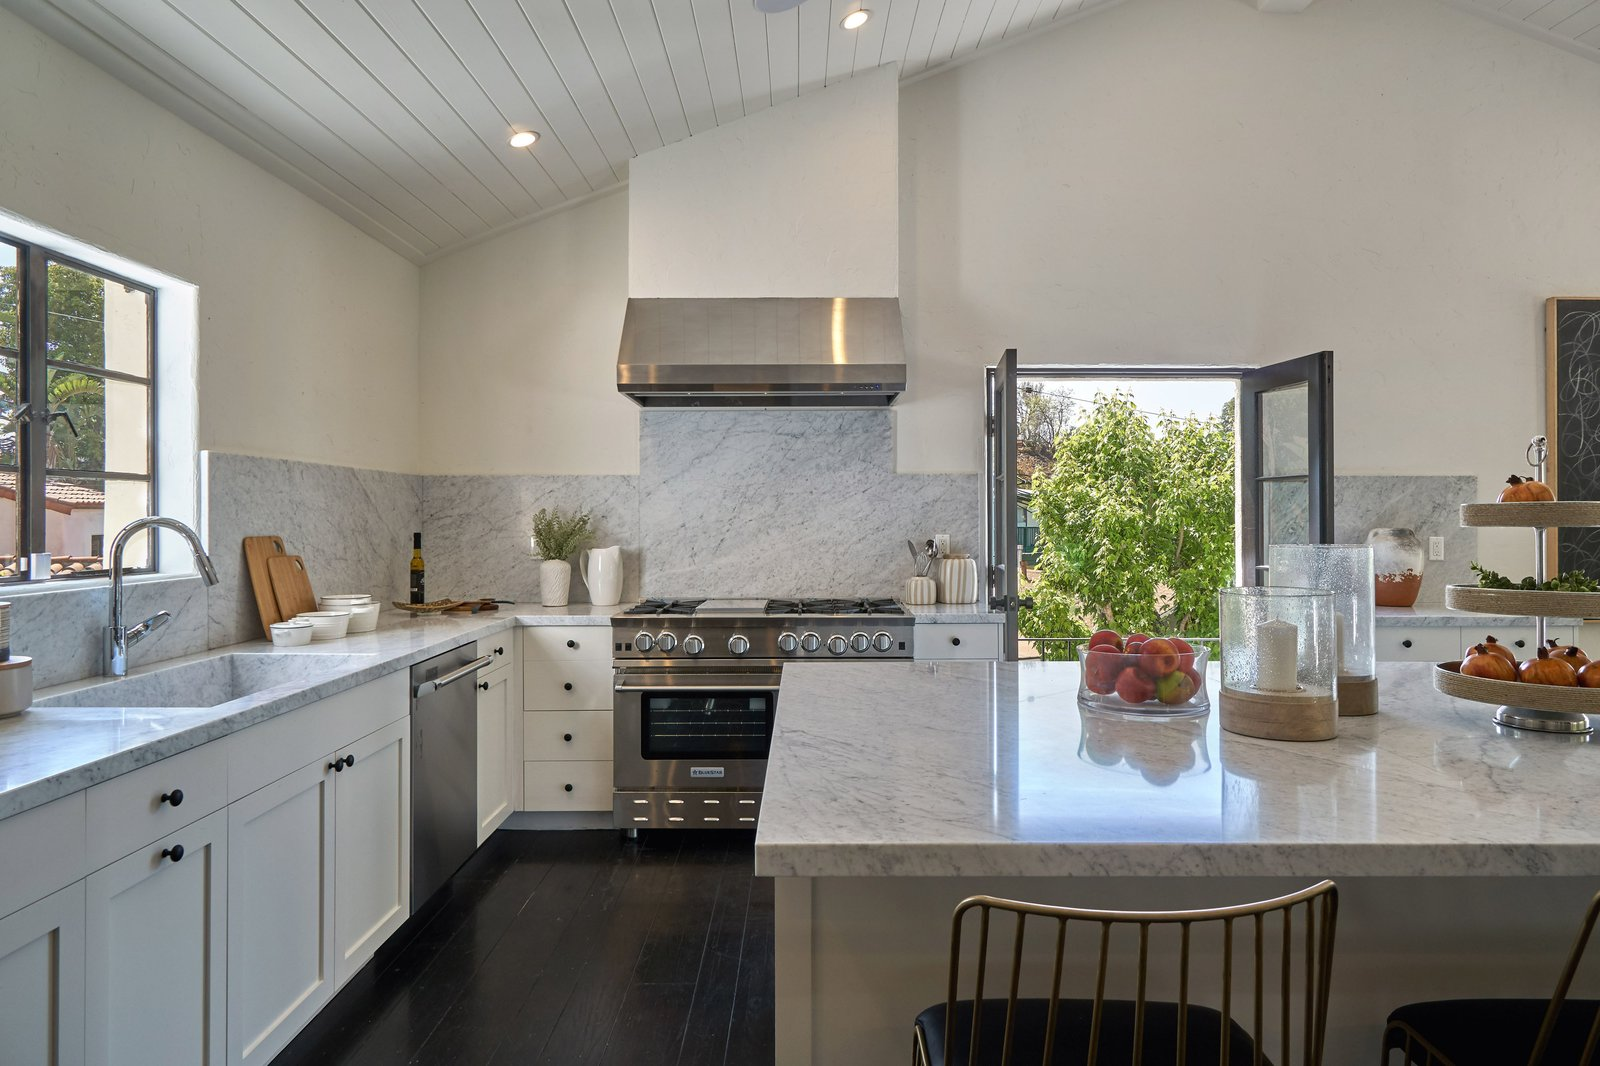 Kitchen, Ceiling, Dark Hardwood, Marble, White, Recessed, Range Hood, Vessel, Marble, Dishwasher, and Range The kitchen.  Kitchen Dishwasher Marble Vessel Recessed Photos from Snatch Up James Dean's Former Hollywood Home For $4M